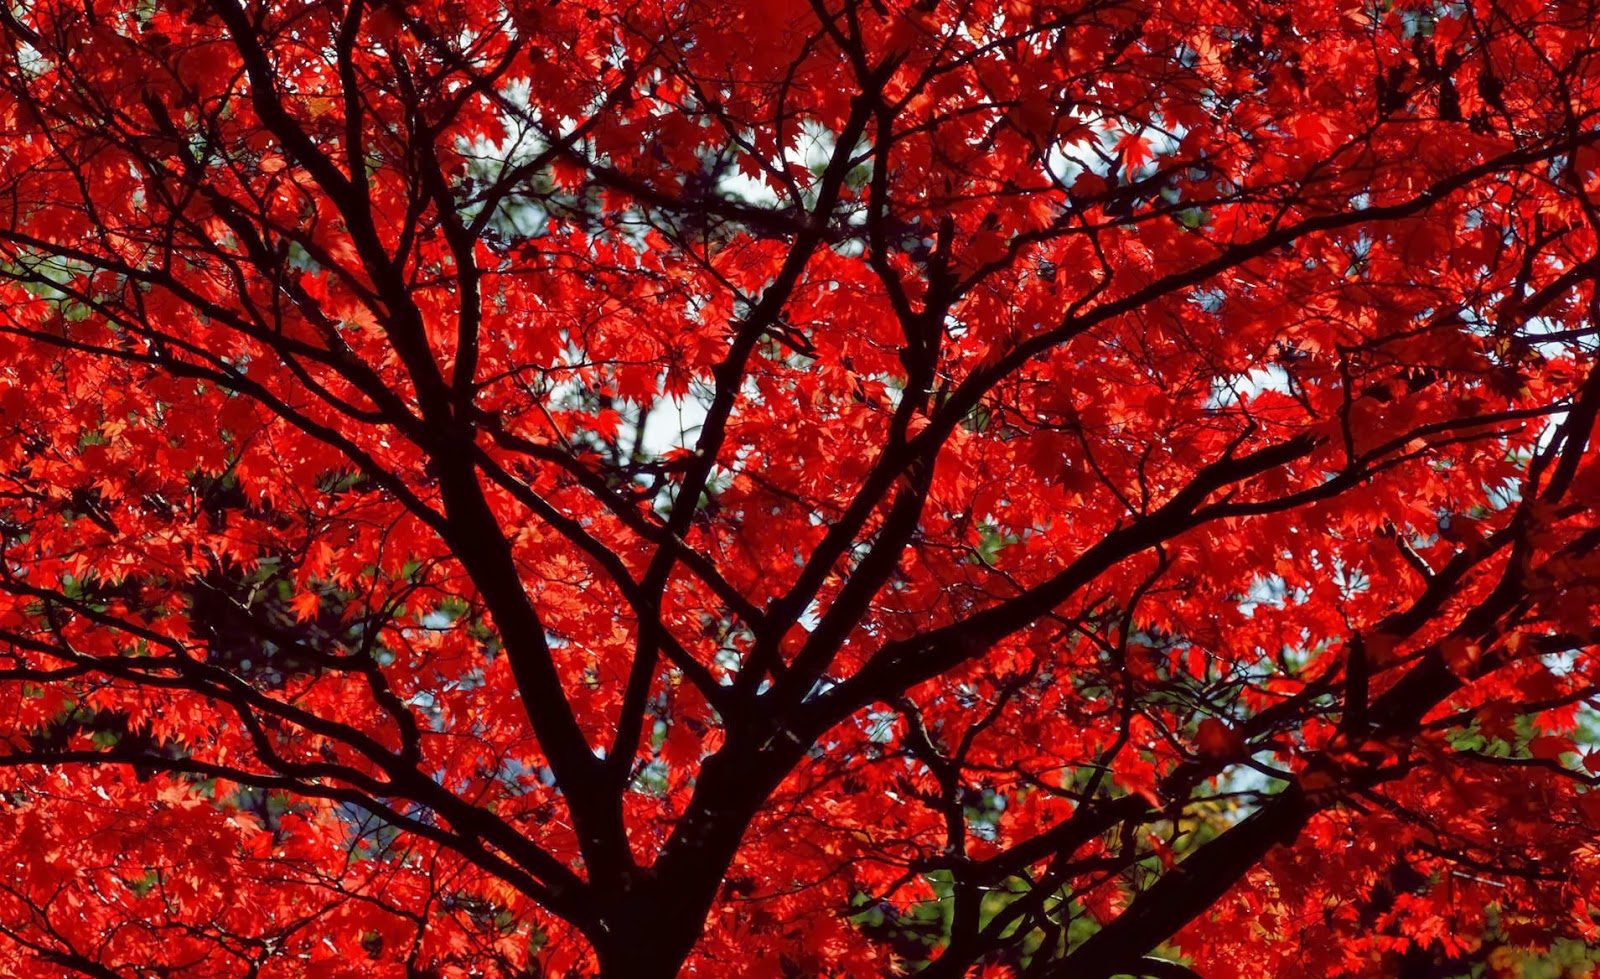 Red Leaves Wallpaper Hd Wallpapers Desktop Dark Red Autumn